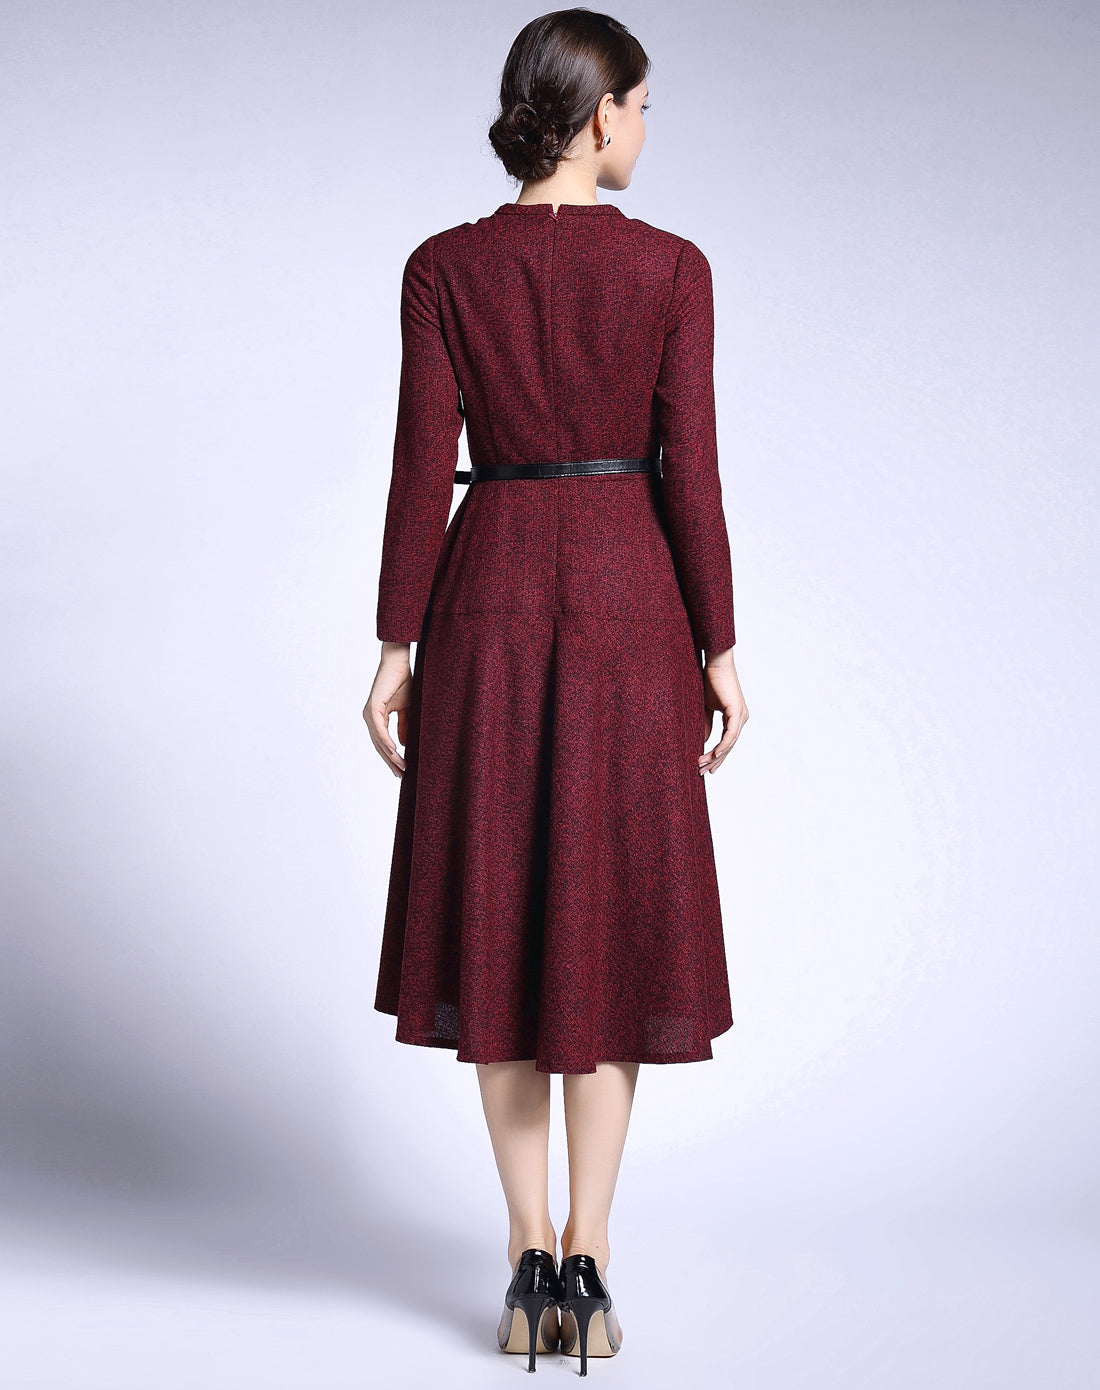 Office A-Line Skirt Crewneck Long Sleeves Midi Dress - ATLASDAY